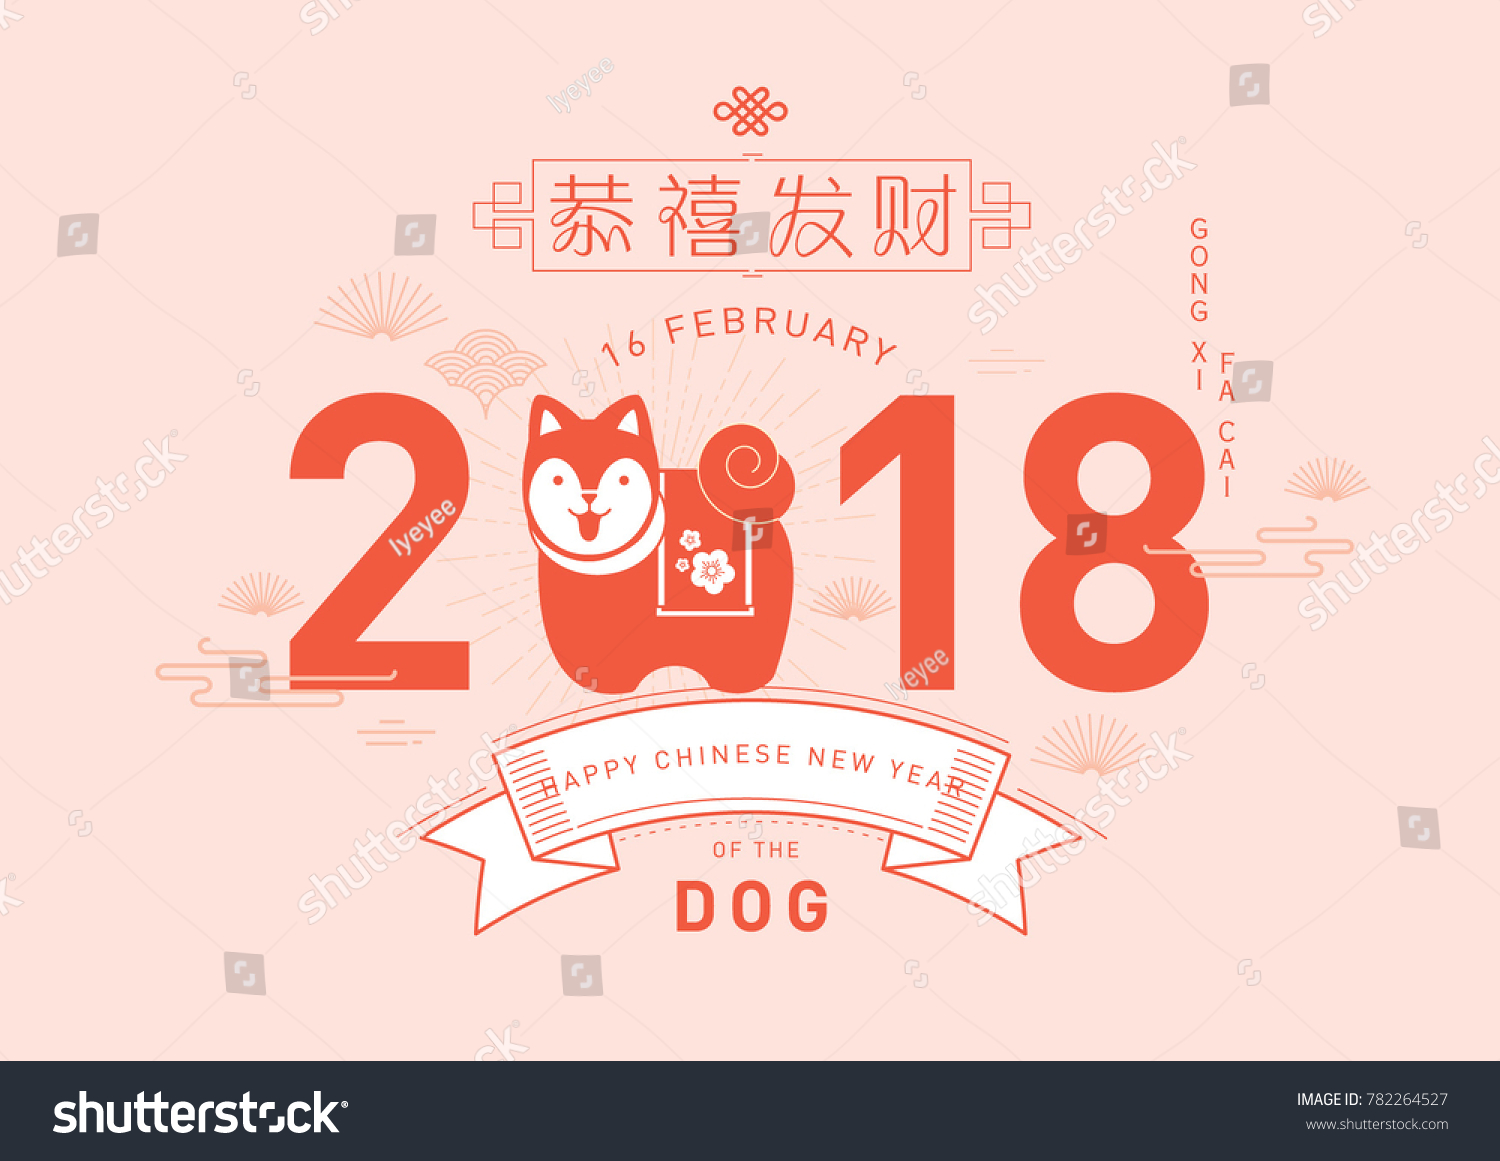 Chinese new year dog 2018 greetings stock photo photo vector chinese new year of the dog 2018 greetings template vectorillustration with chinese words that m4hsunfo